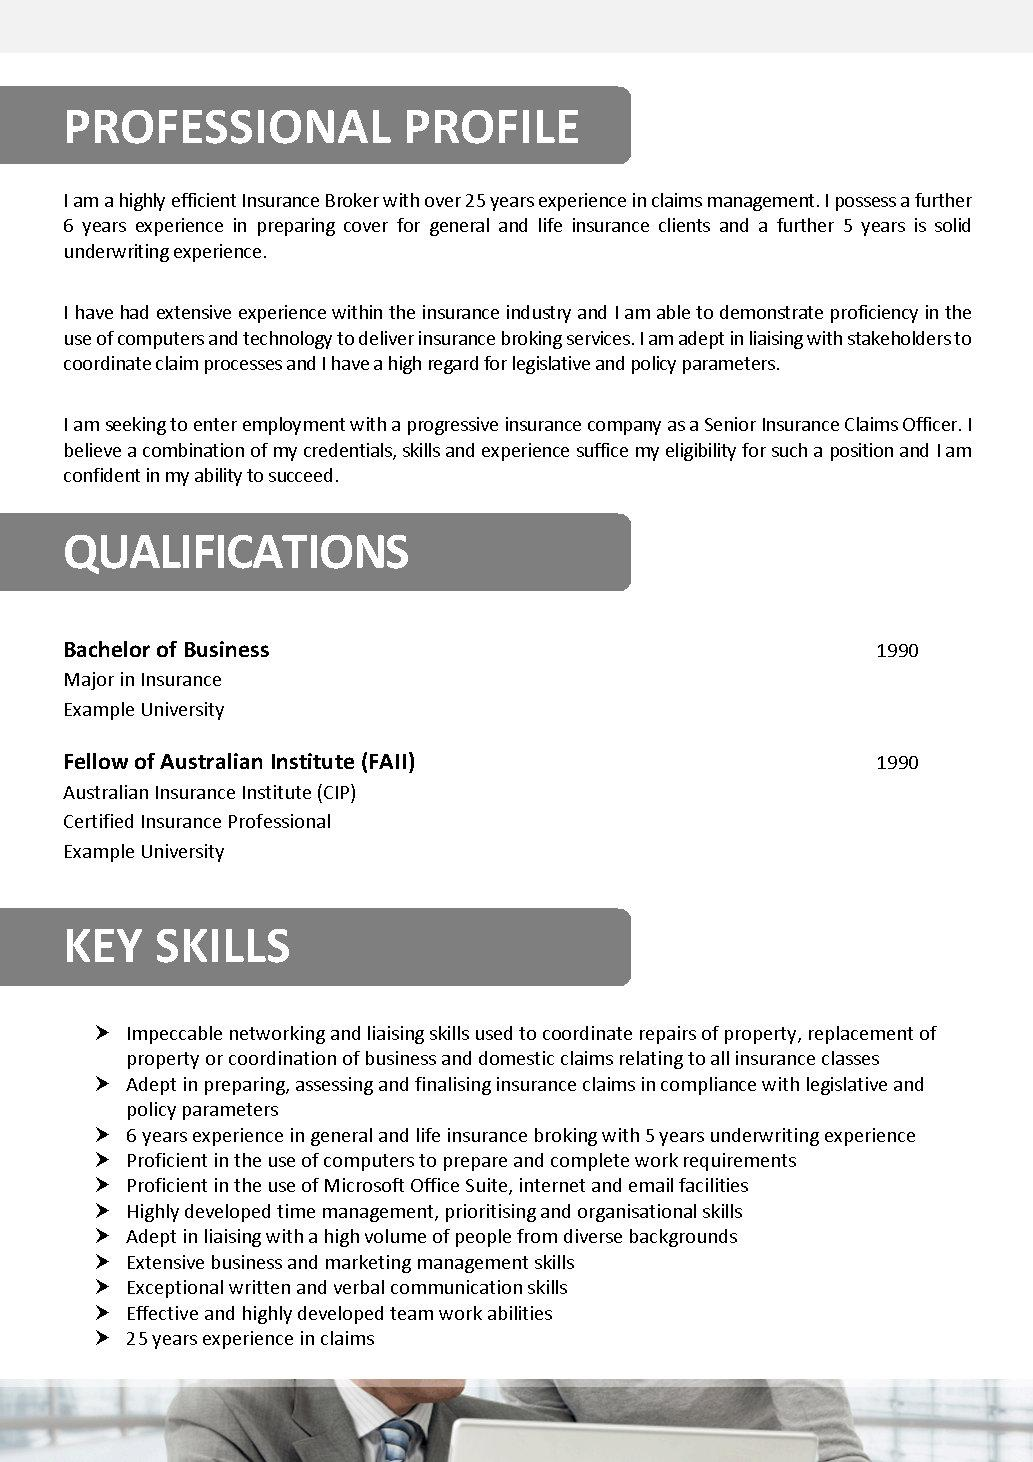 Insurance Broker Resume We Can Help With Professional Resume Writing Resume